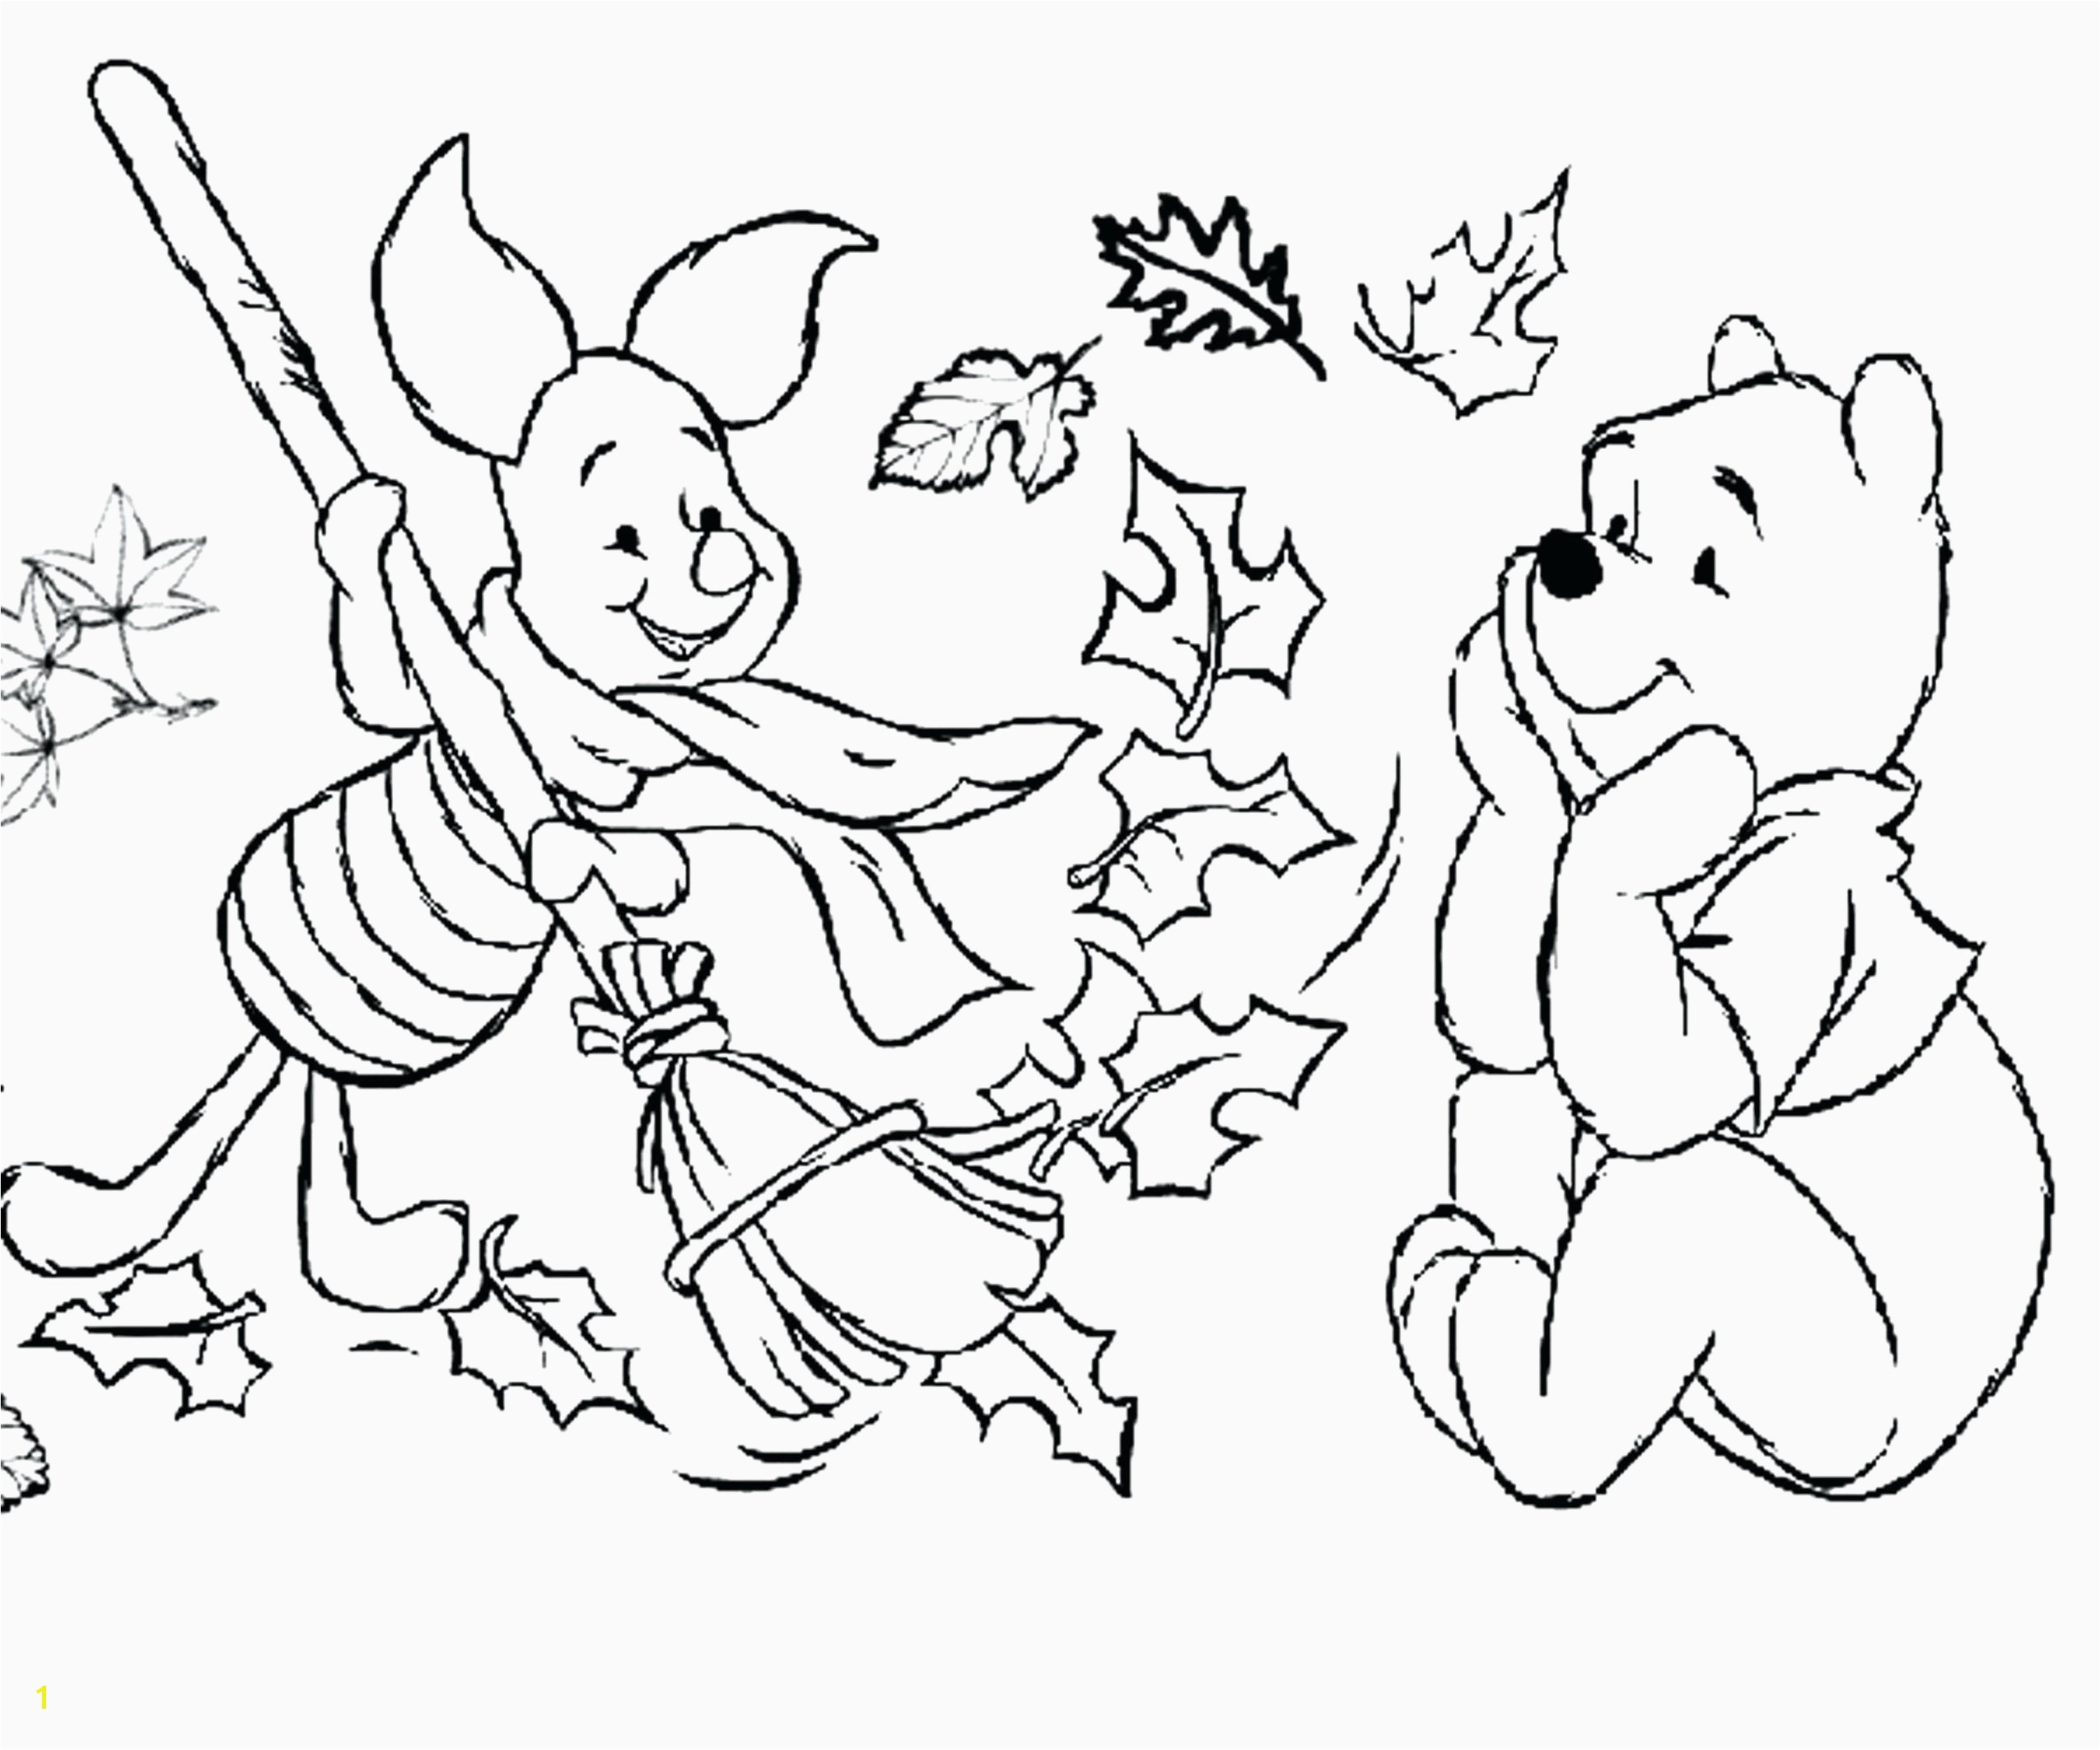 Coloring Pages For Fall Printable With Free And 30aa 0d Page Kids Inspirational Kidsboys Preschool Colouring